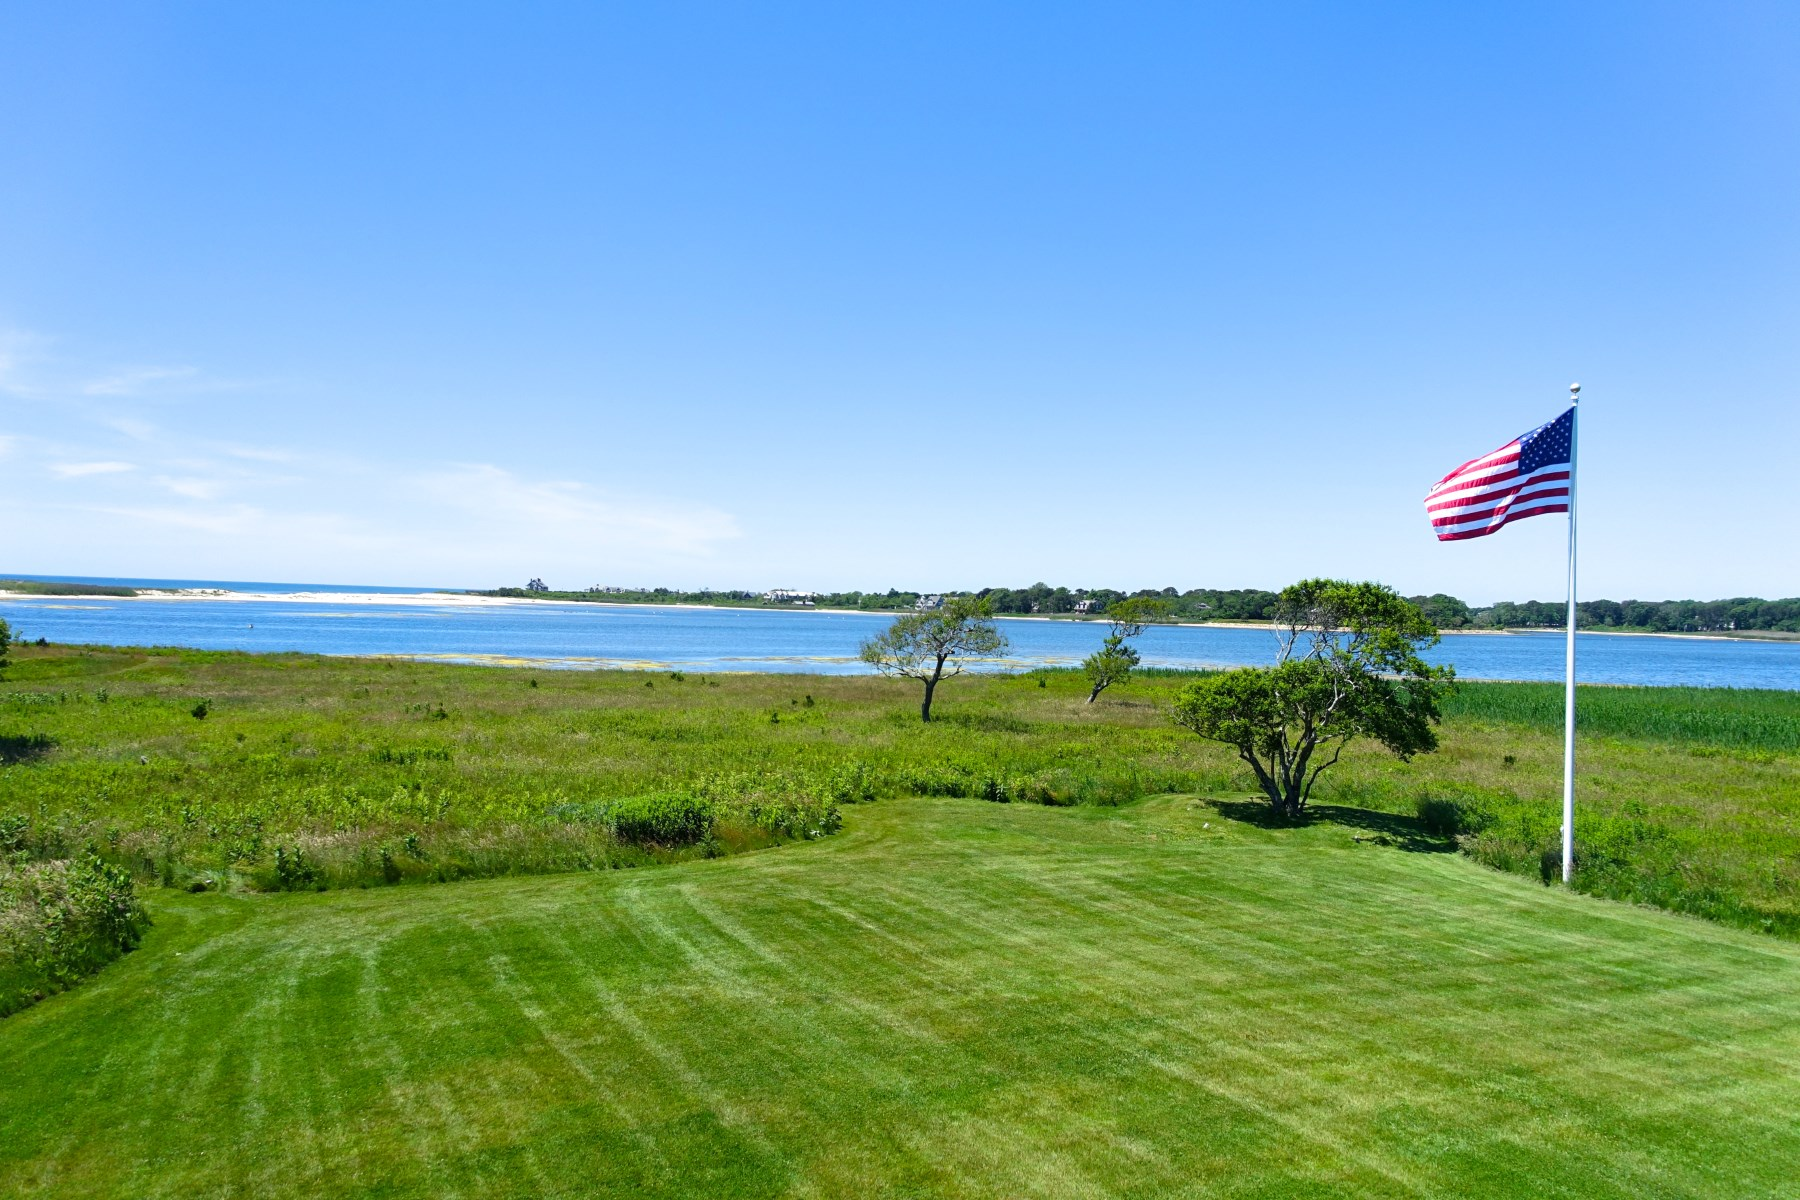 단독 가정 주택 용 매매 에 7.1 Acres On Prestigious Pond 19 & 23 Chauncey Close East Hampton Village, East Hampton, 뉴욕, 11937 미국